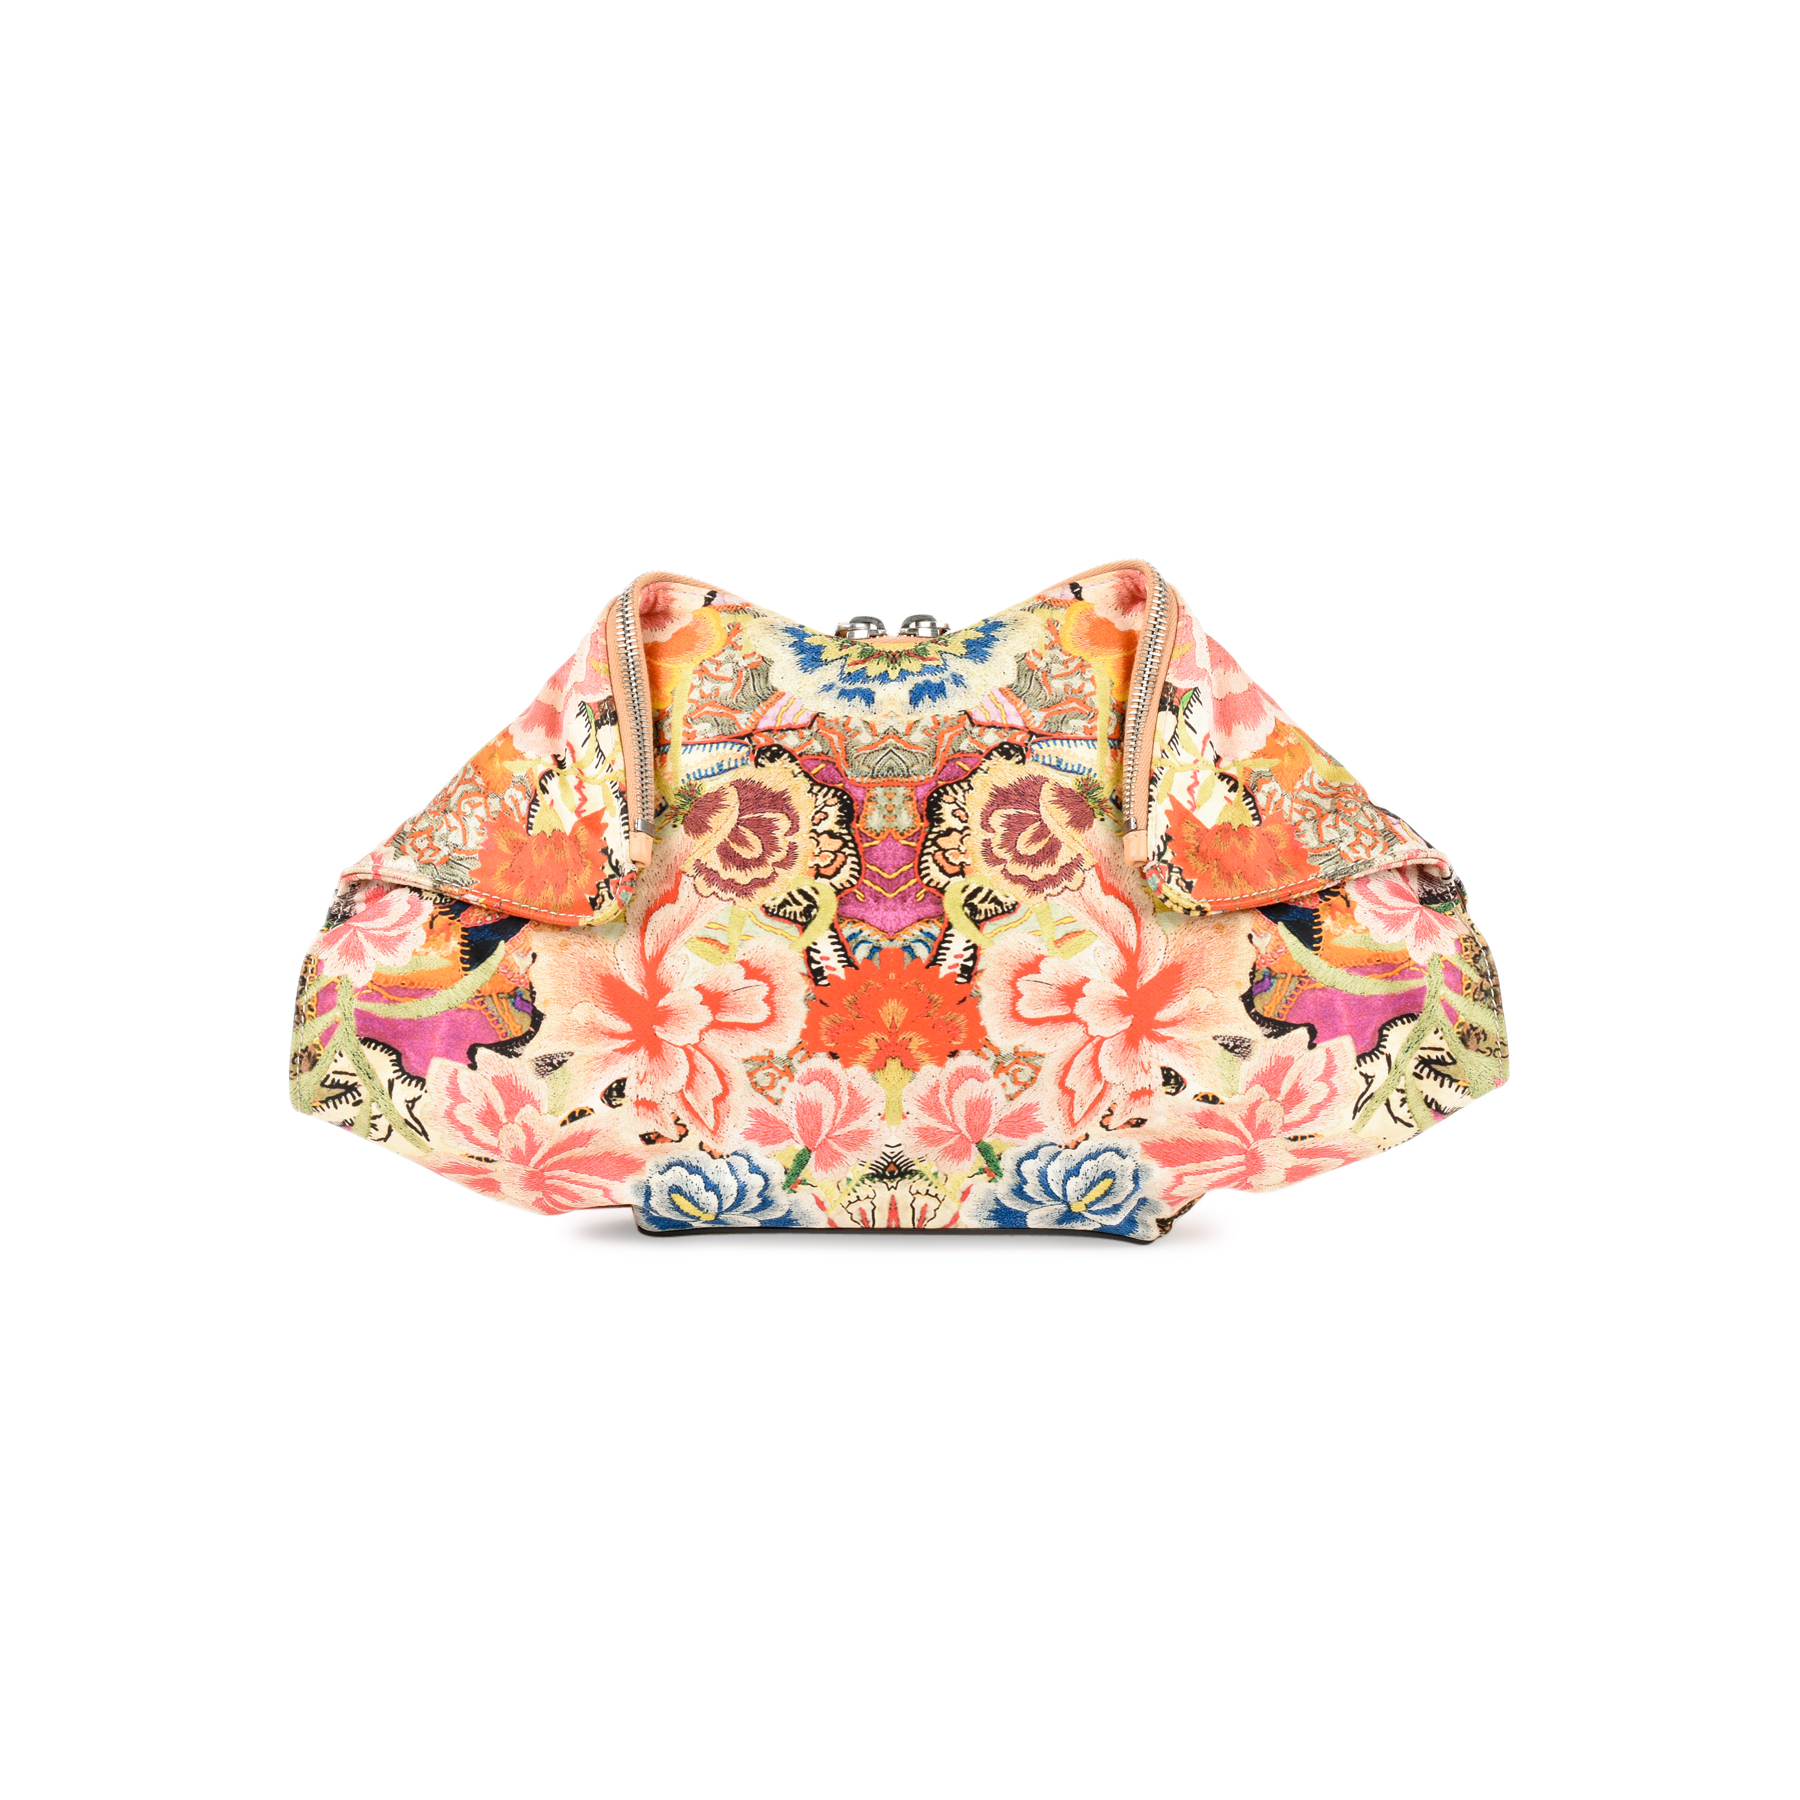 3671b320b Authentic Second Hand Alexander McQueen De Manta Patchwork Floral Clutch  (PSS-235-00082) - THE FIFTH COLLECTION